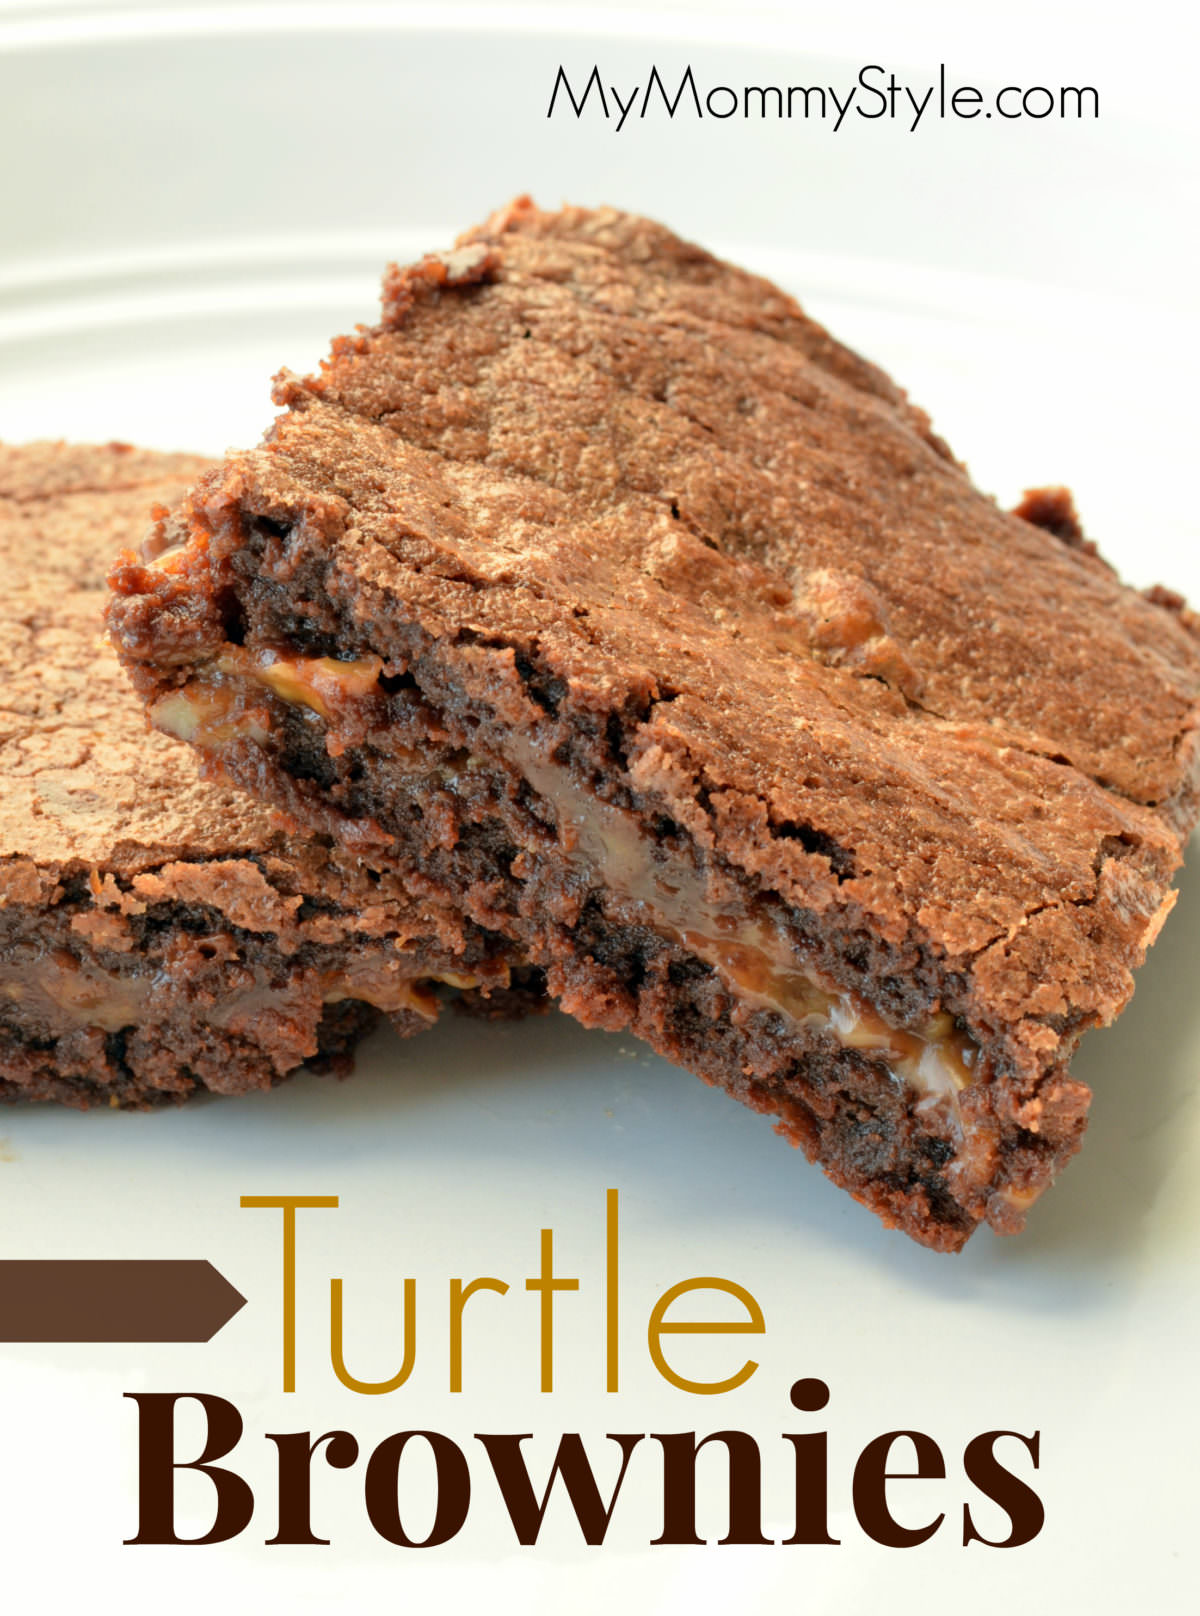 Turtle Brownies - My Mommy Style